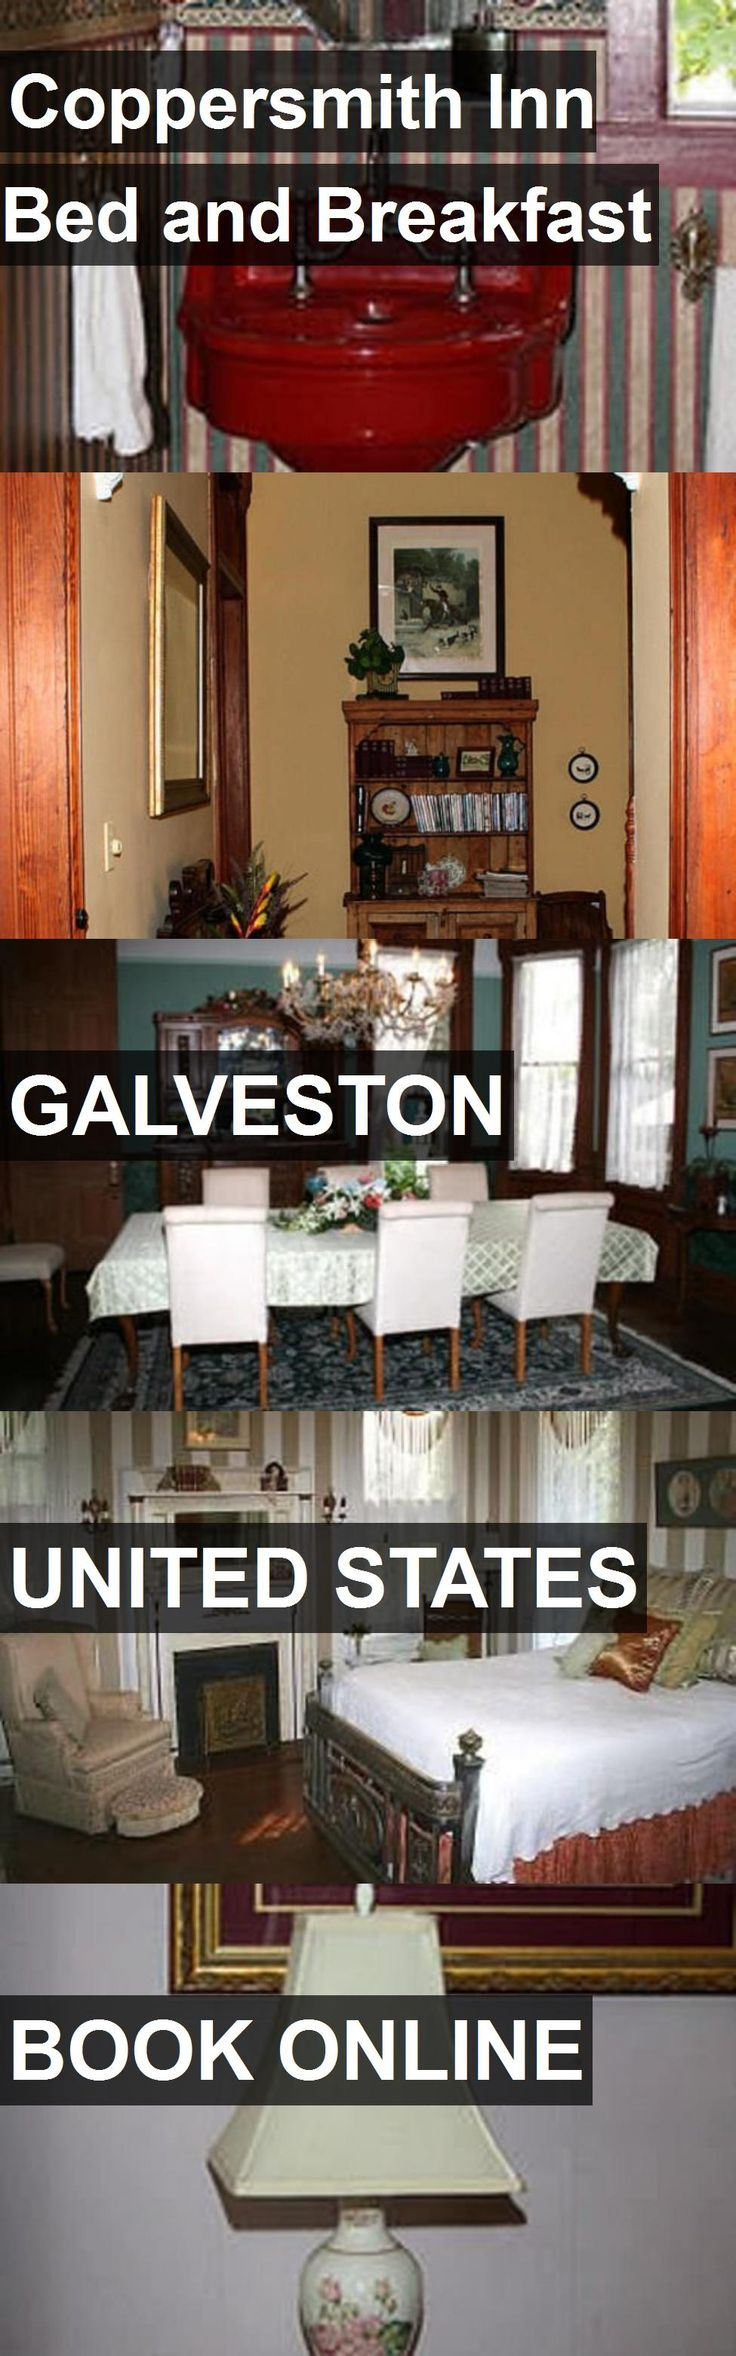 Hotel Coppersmith Inn Bed and Breakfast in Galveston, United States. For more information, photos, reviews and best prices please follow the link. #UnitedStates #Galveston #travel #vacation #hotel